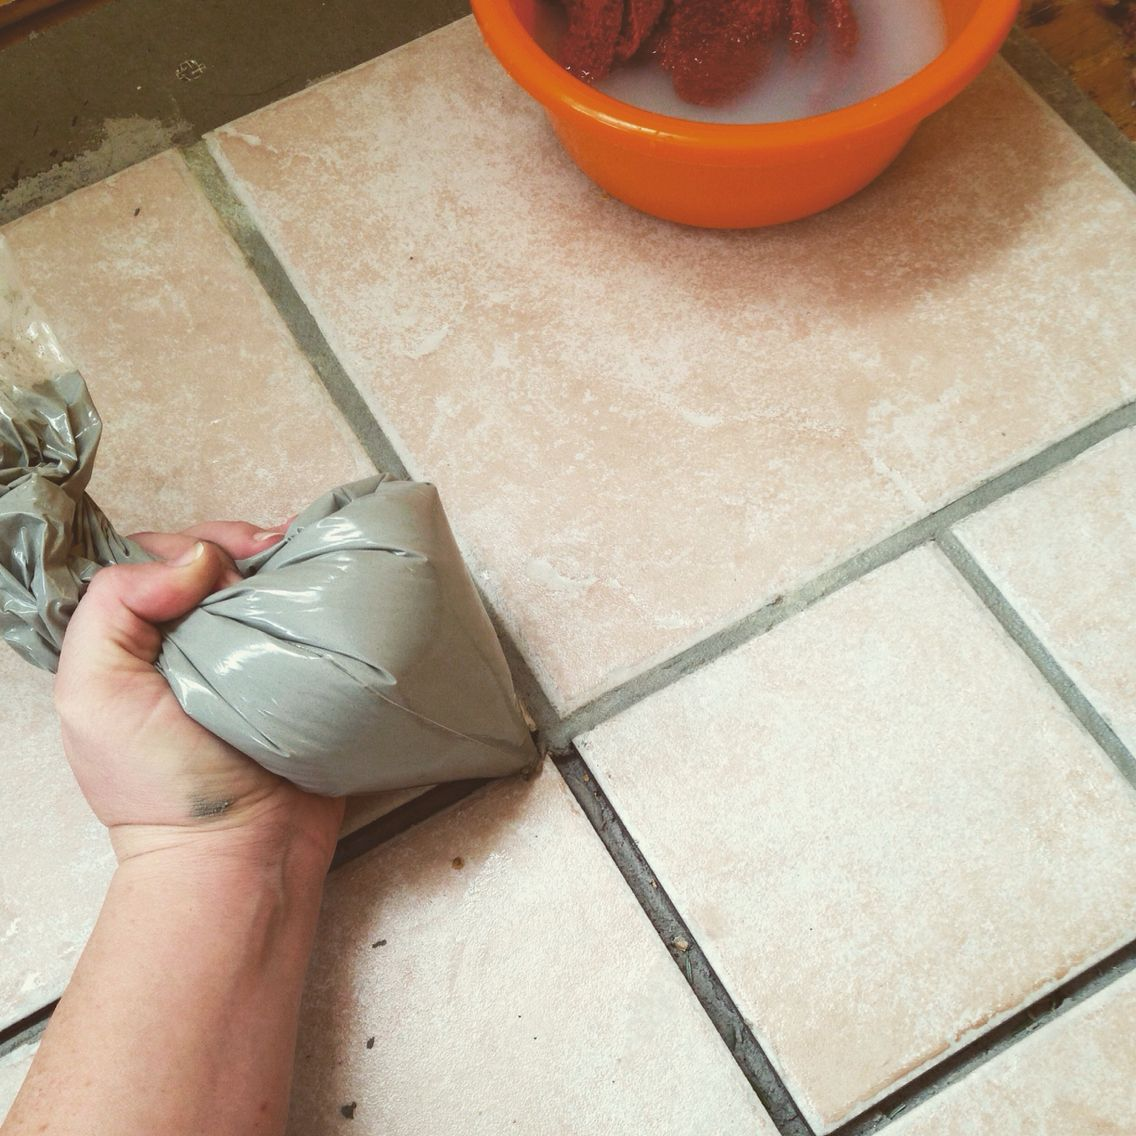 Put those cake decorating skills to work when grouting